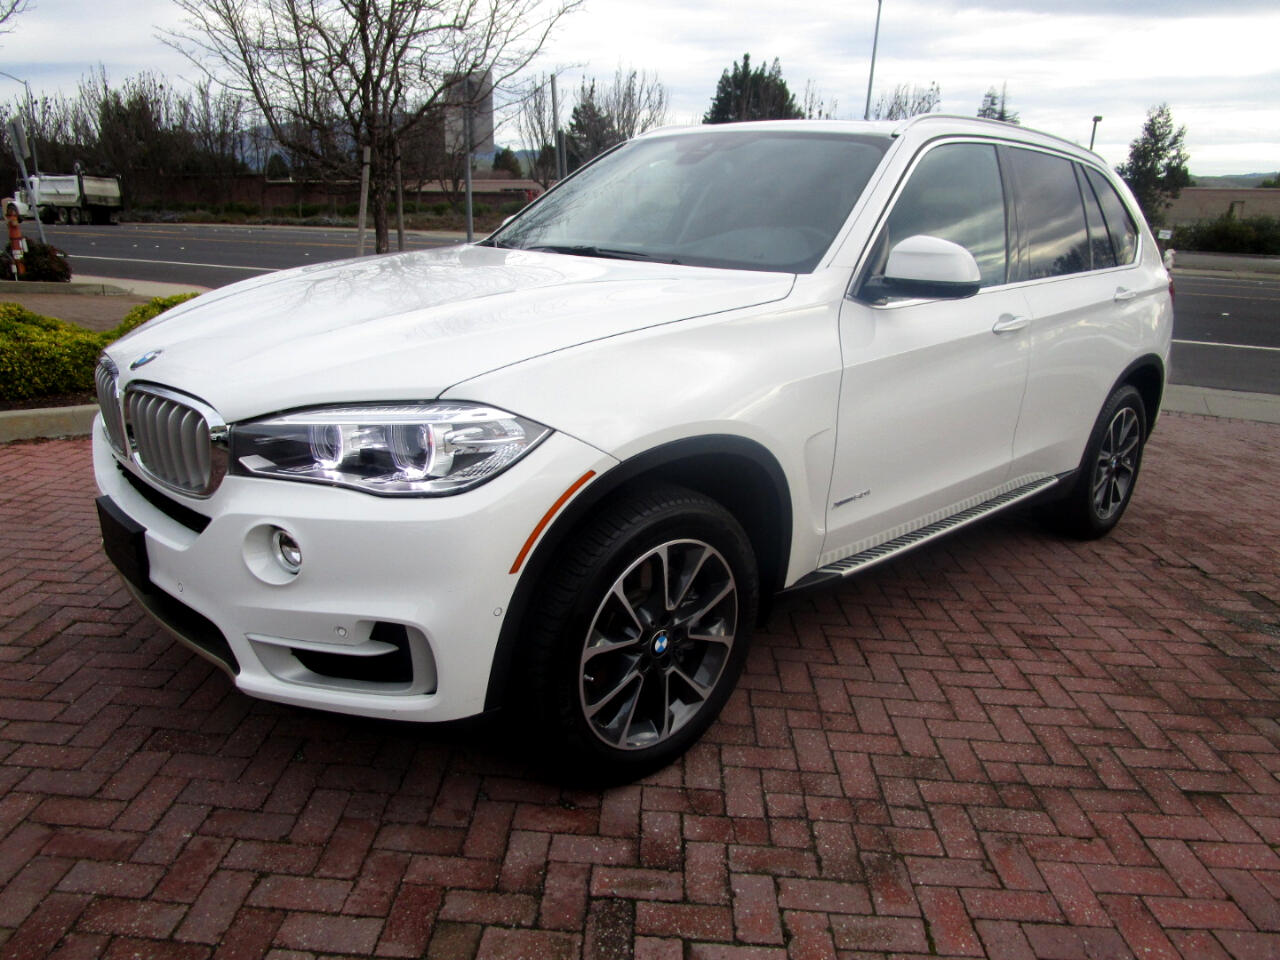 2015 BMW X5 XDrive 5.0 AWD*DRIVER ASSIST PLUS*HEAT/AC SEATS*PANO*COMF ACC